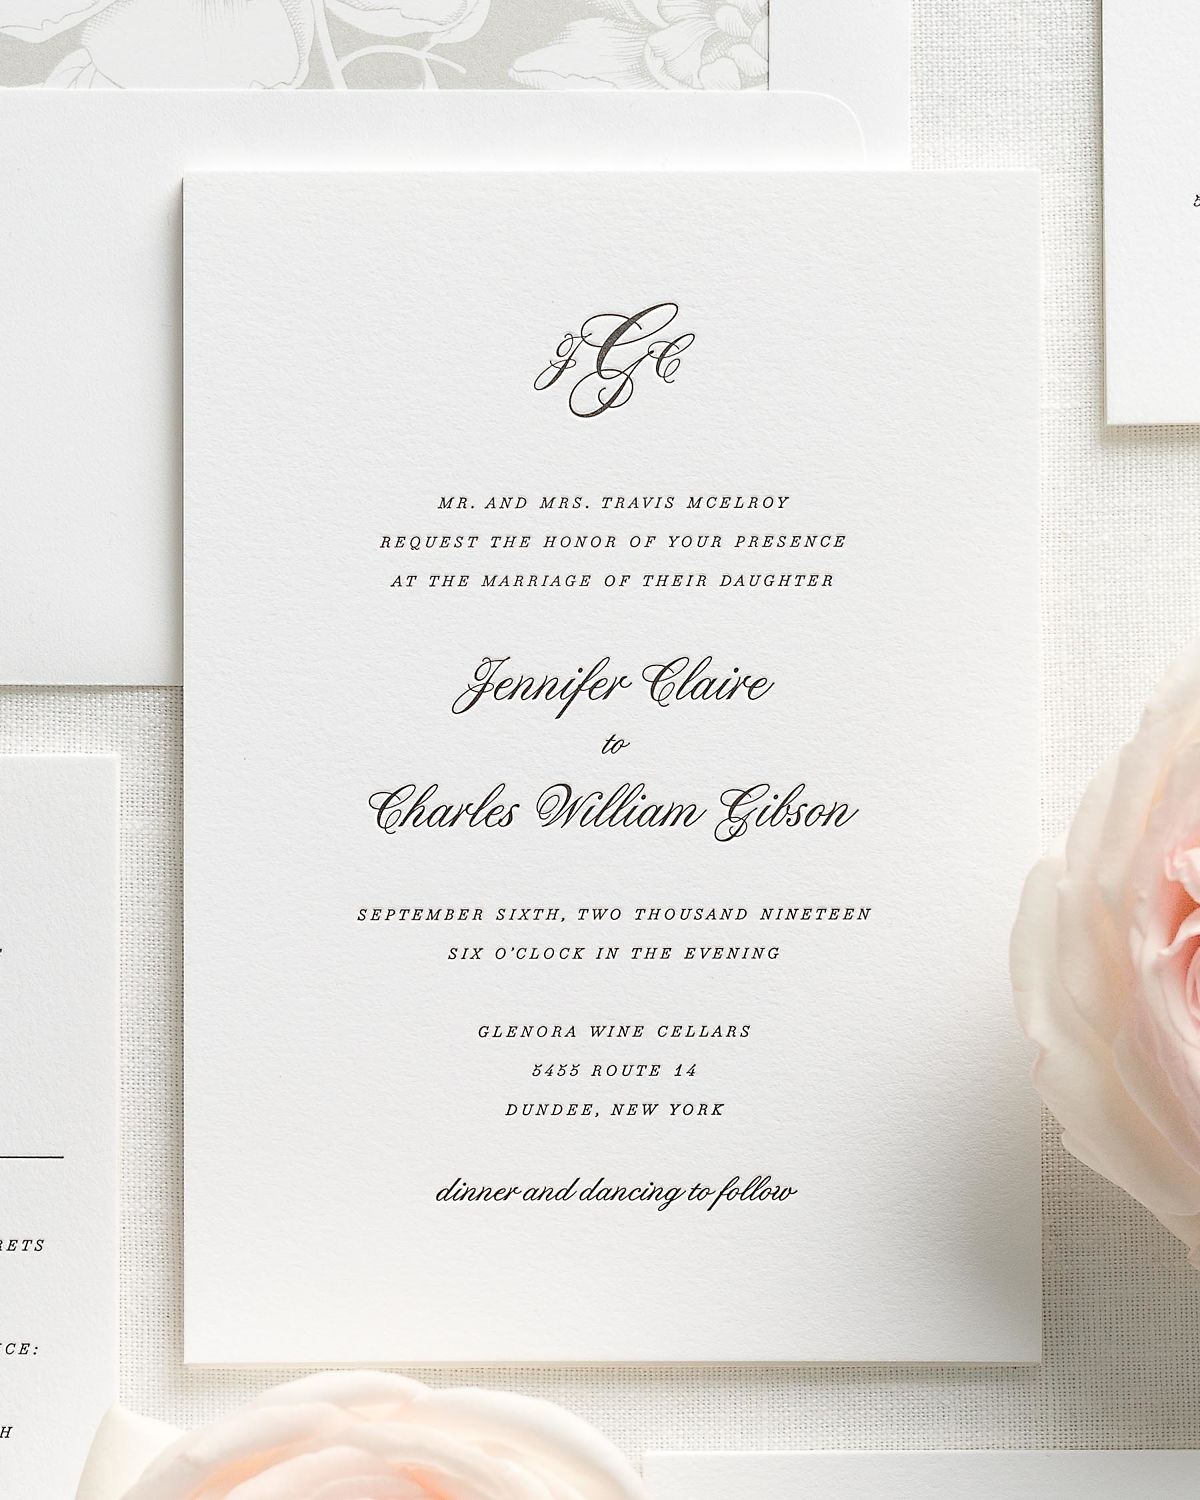 Stone Wedding Invitation Suite with Letterpress Printing